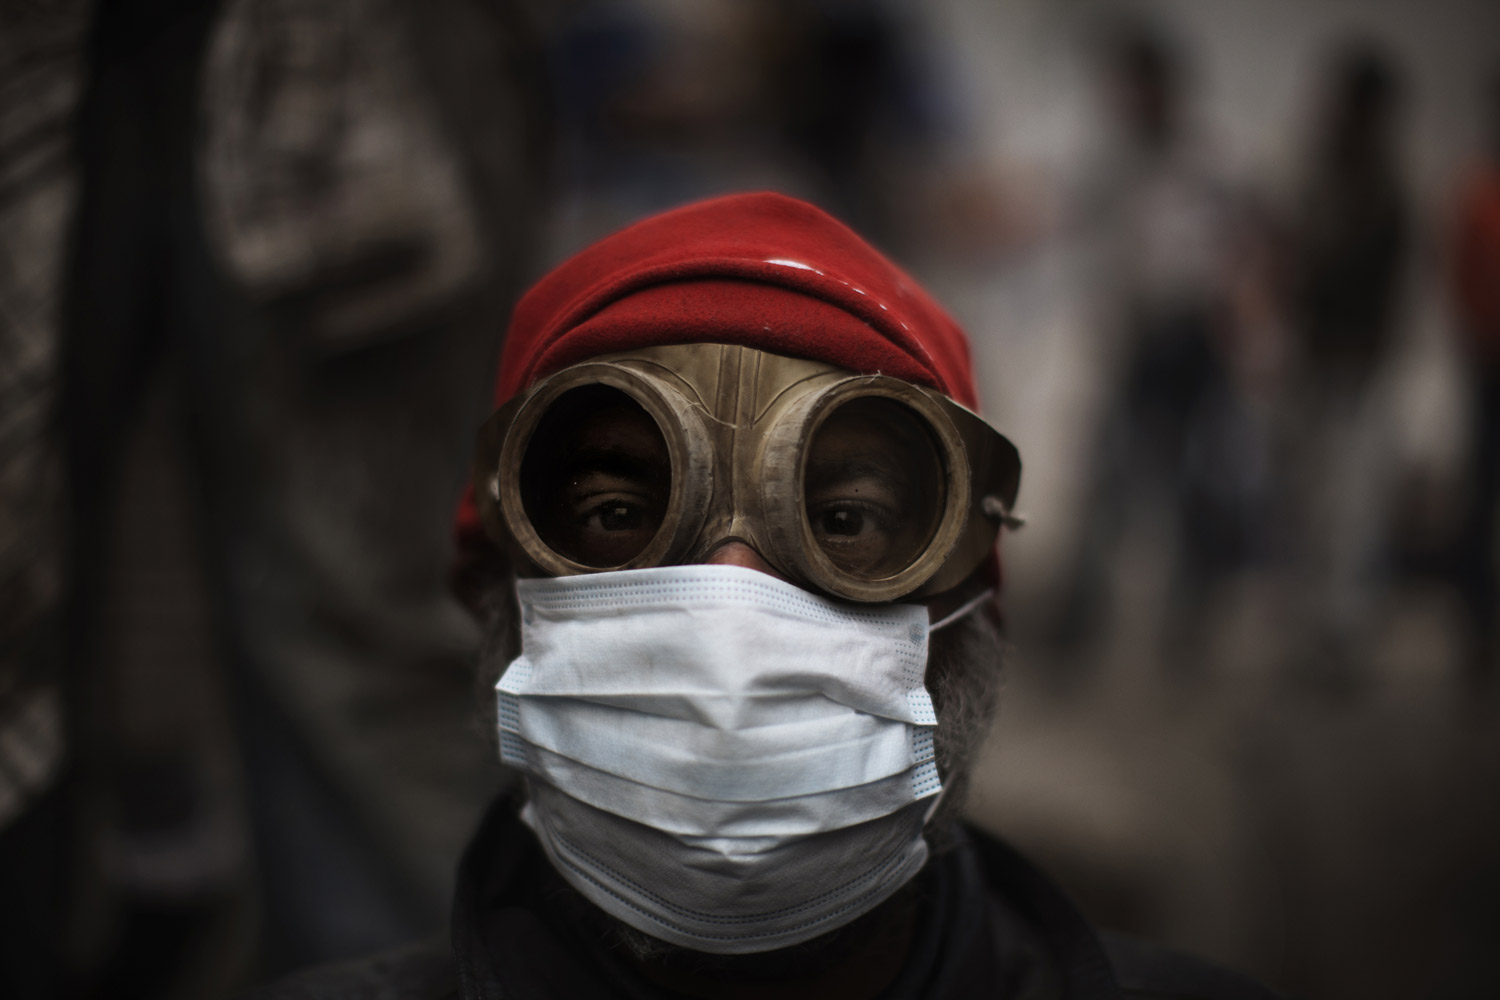 February 6, 2012. An Egyptian demonstrator uses goggles and a protective mask against tear gas fired by riot police during confrontations outside Cairo's security headquarters.